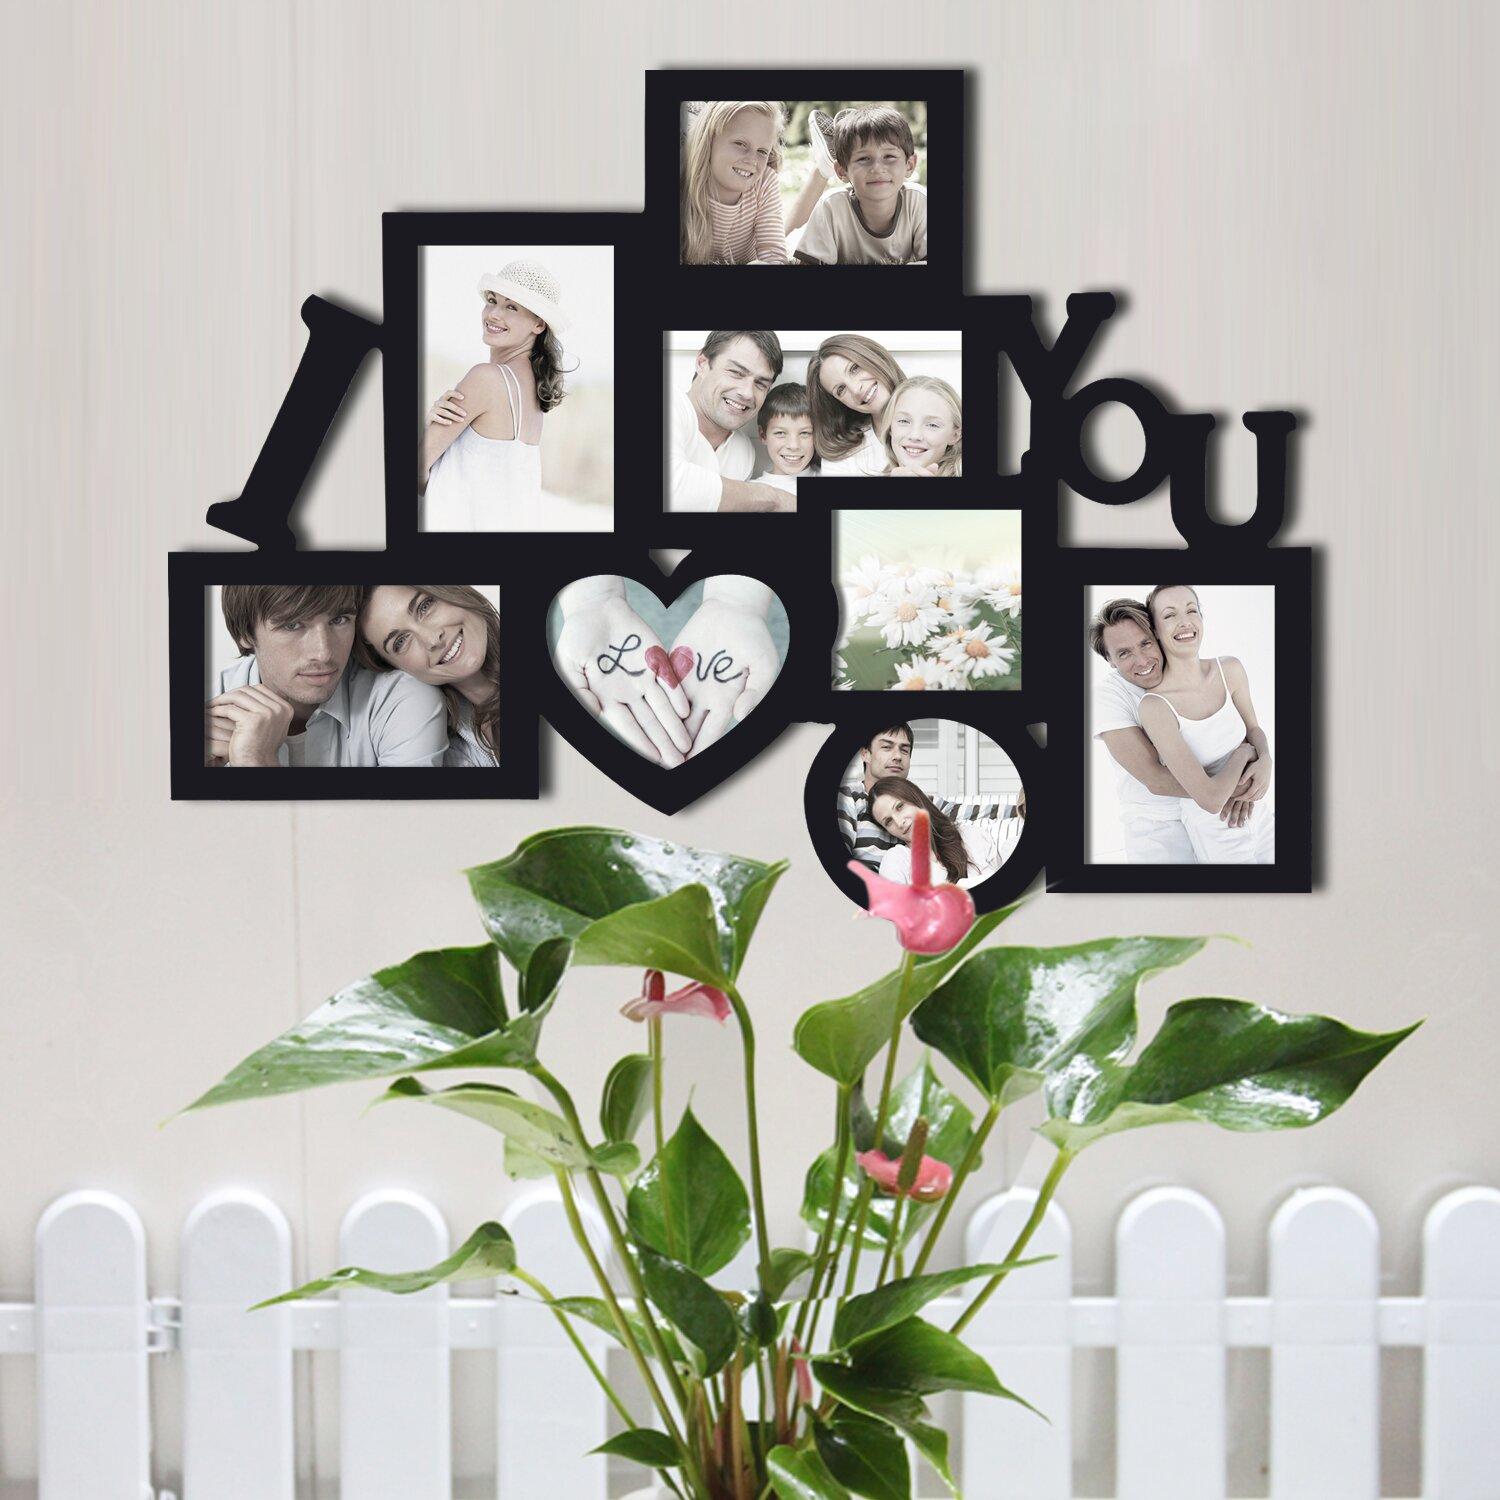 Wall Hanging Photo Frames Designs surprising wall hanging picture frame decorating ideas gallery in bedroom transitional design ideas 8 Opening Wooden Photo Collage Wall Hanging Picture Frame